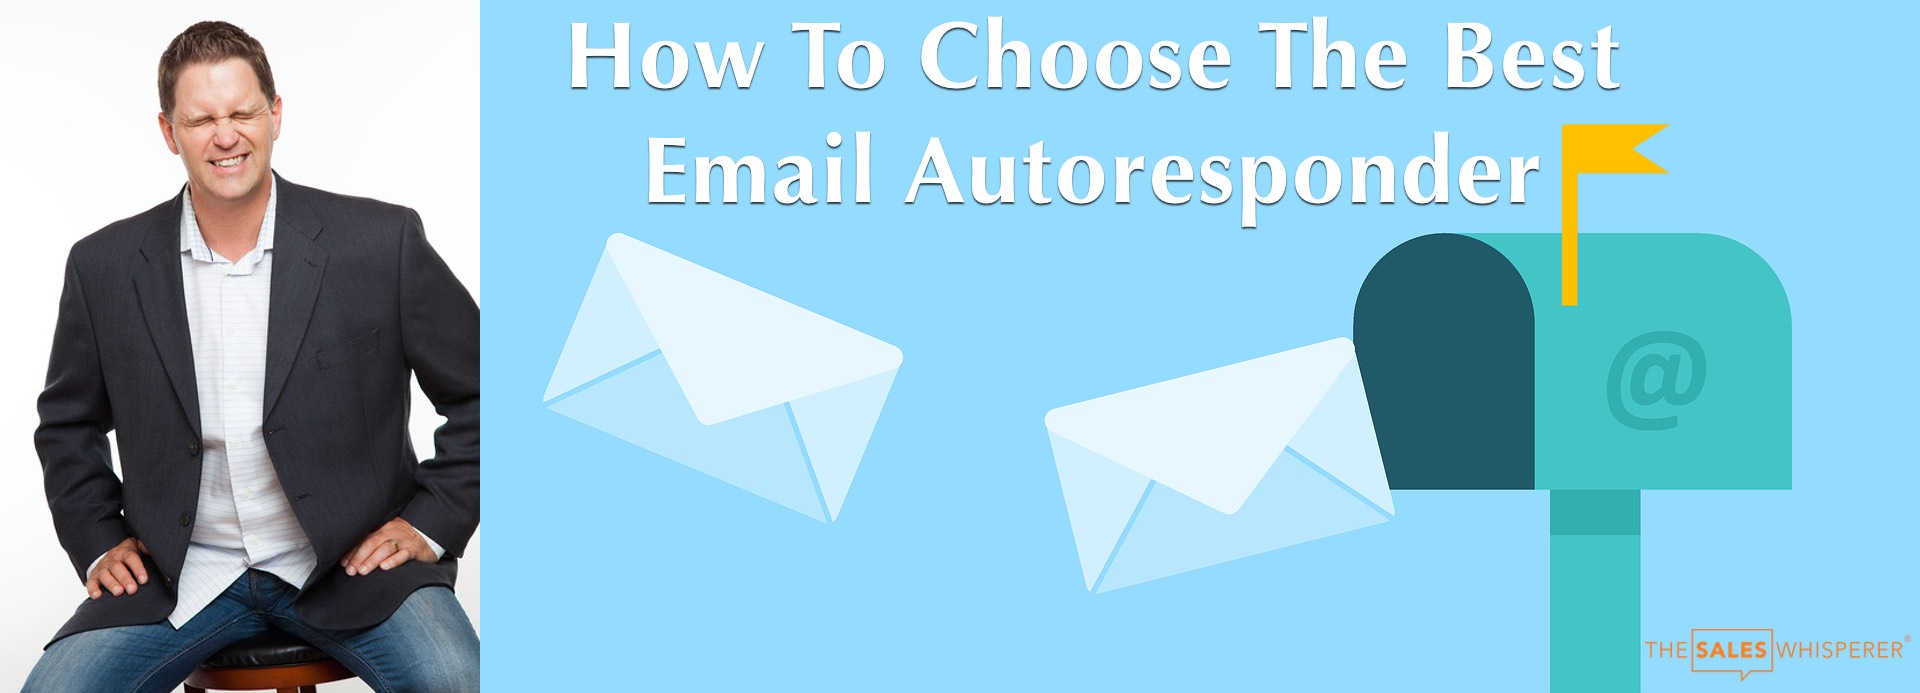 how to choose the best email autoresponder